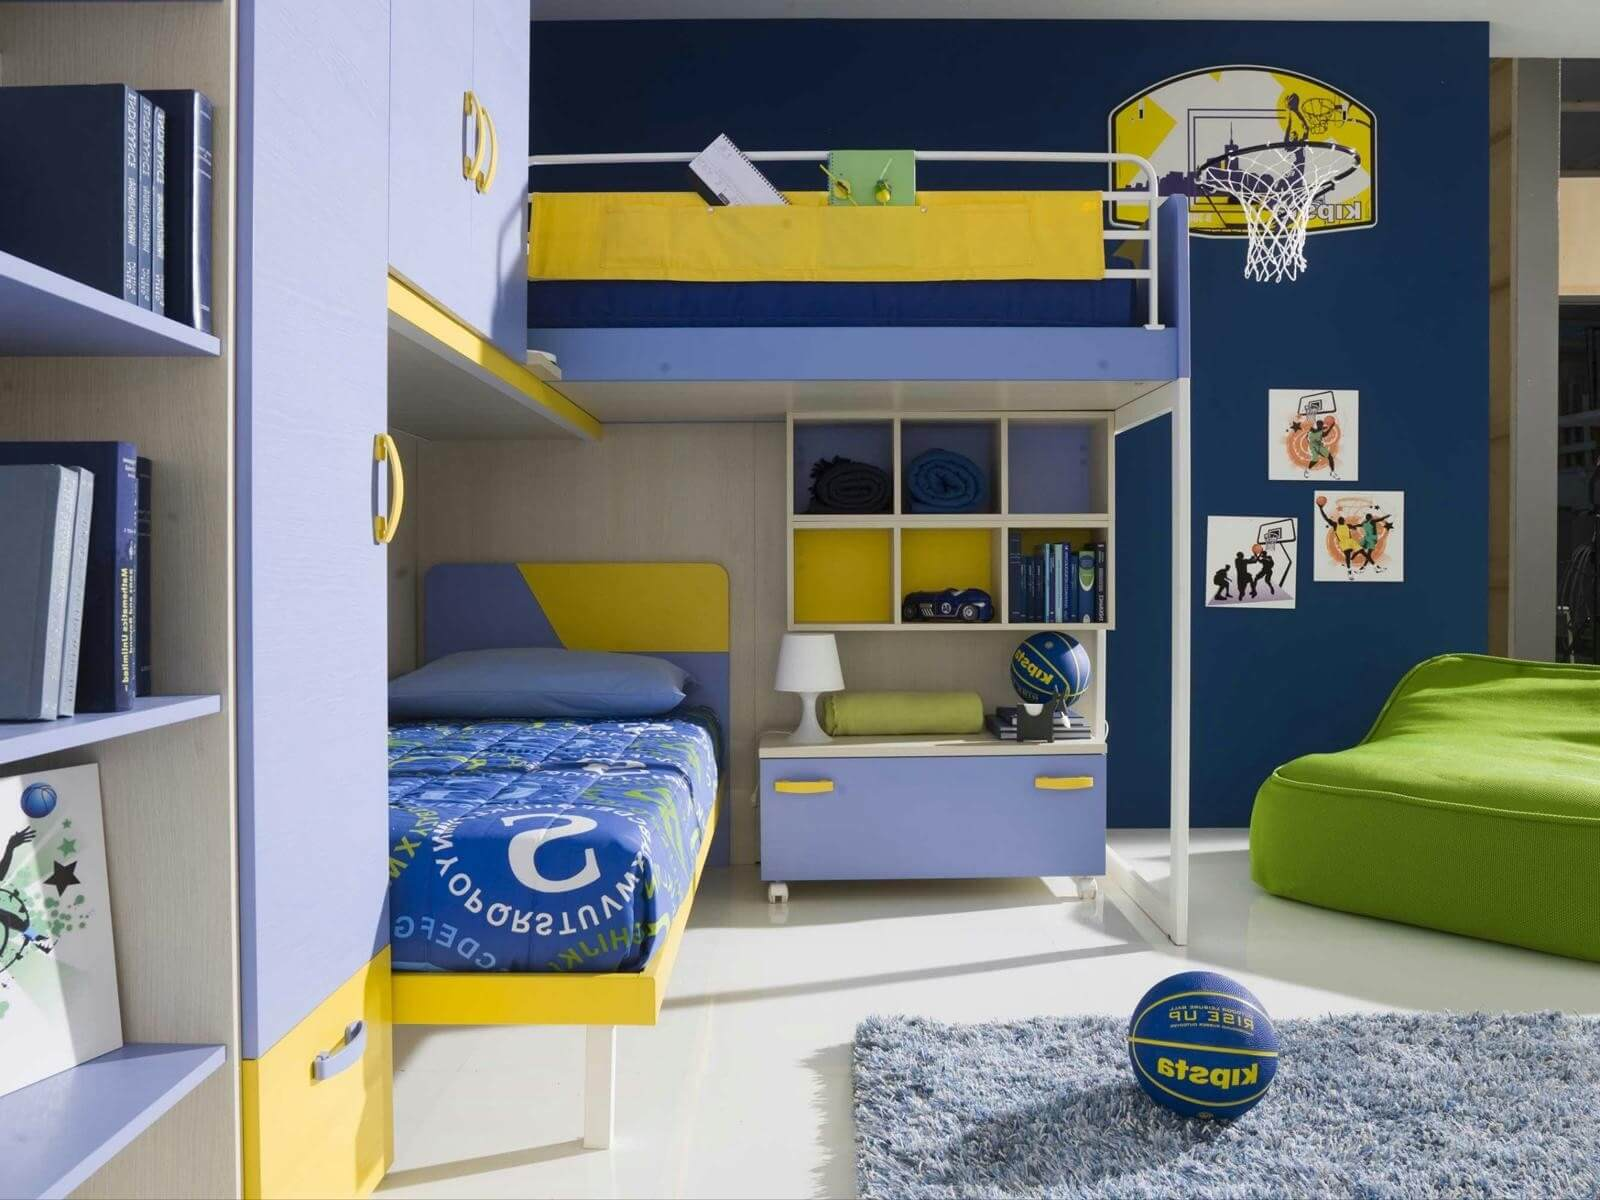 12 Inspirational Ideas For Decorating Basketball Themed